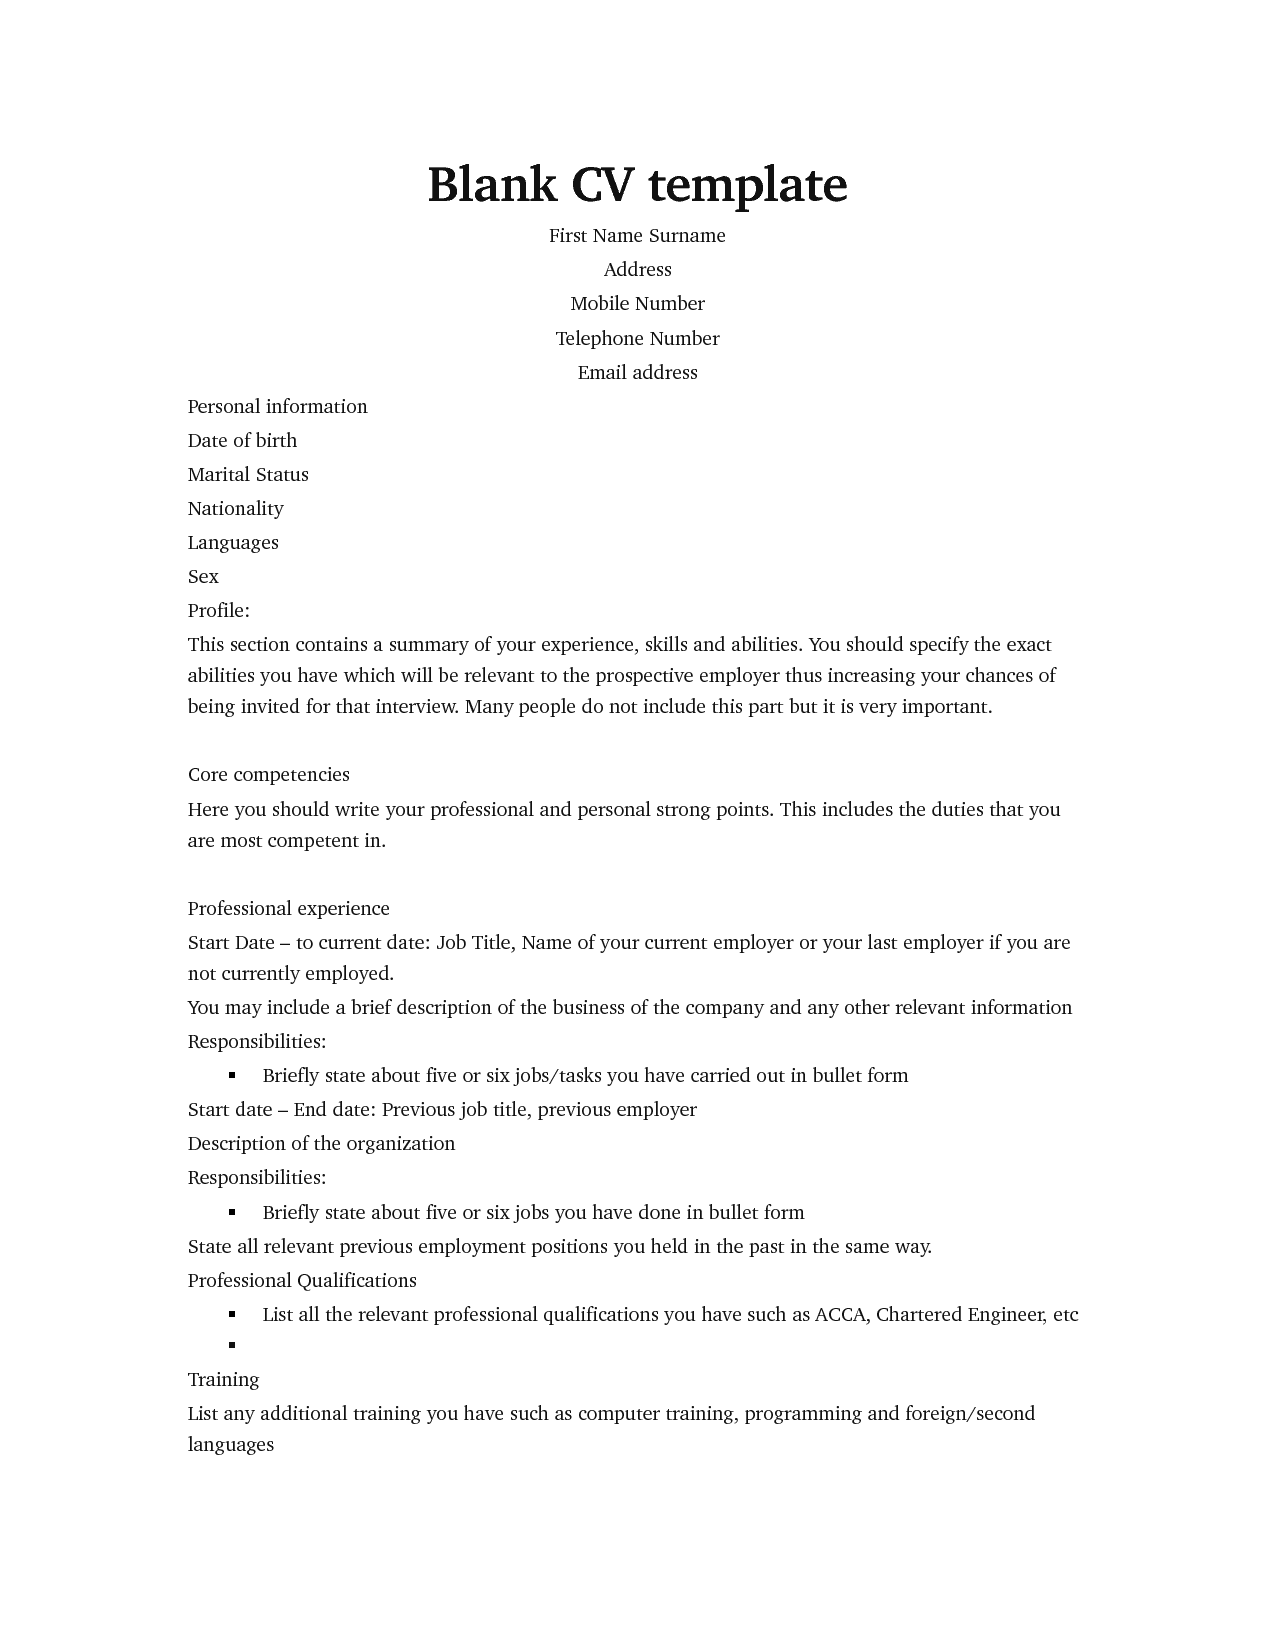 graduate cv tips and cv template uk  example for students